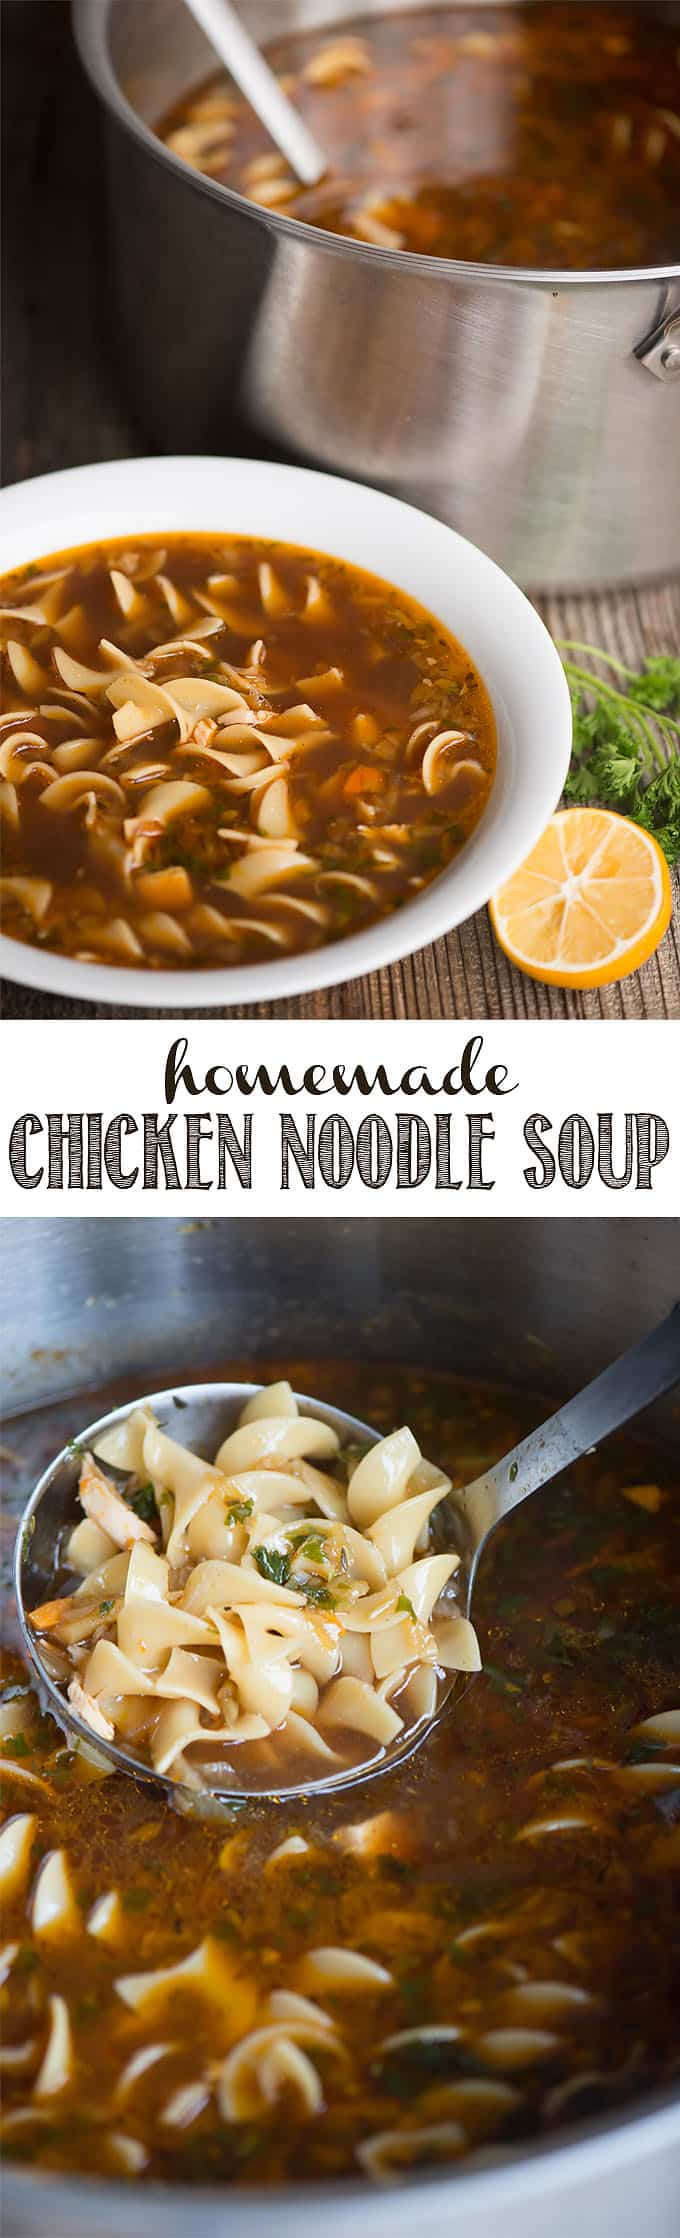 Homemade Chicken Noodle Soup is a hearty, healthy, and comforting meal that everyone should know how to make from scratch. This recipe starts with homemade chicken broth, veggies to add flavor and vitamins, and egg noodles to make in an old fashioned favorite! This chicken soup is the perfect remedy if you're sick! #chicken #chickensoup #chickennoodlesoup #homemade #homemadechickennoodlesoup